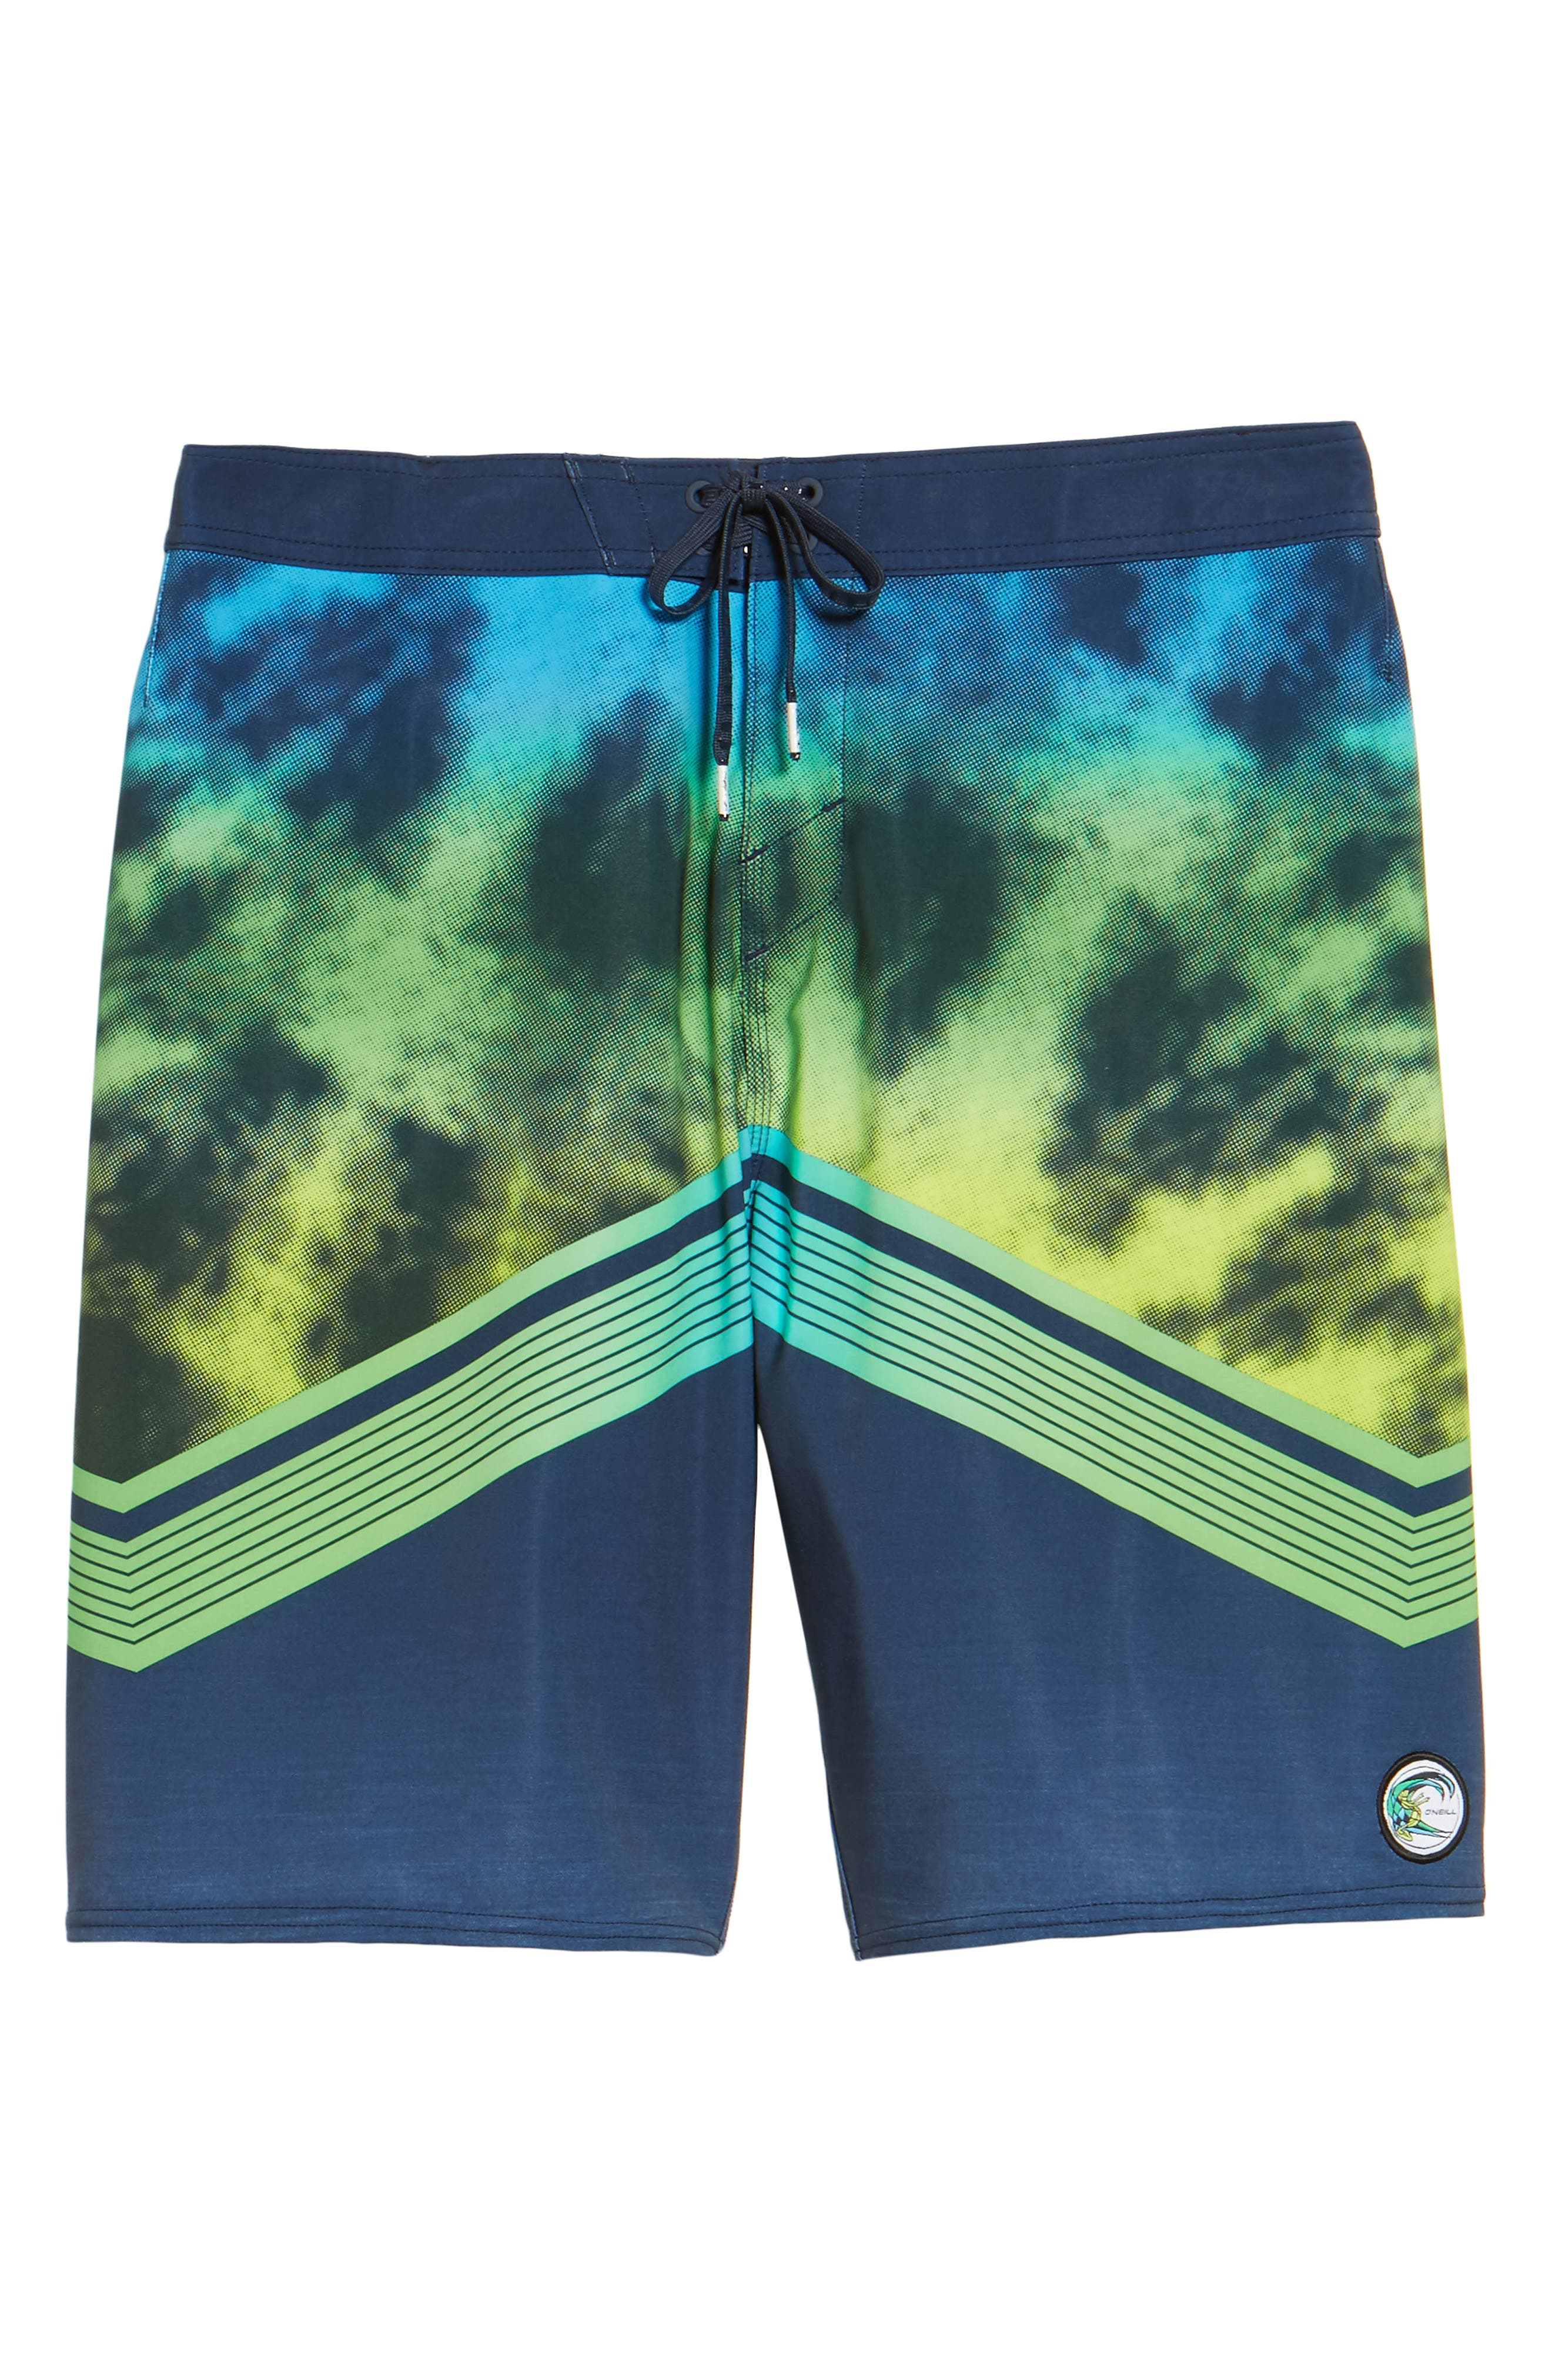 Hyperfreak Imagine Board Shorts,                             Alternate thumbnail 12, color,